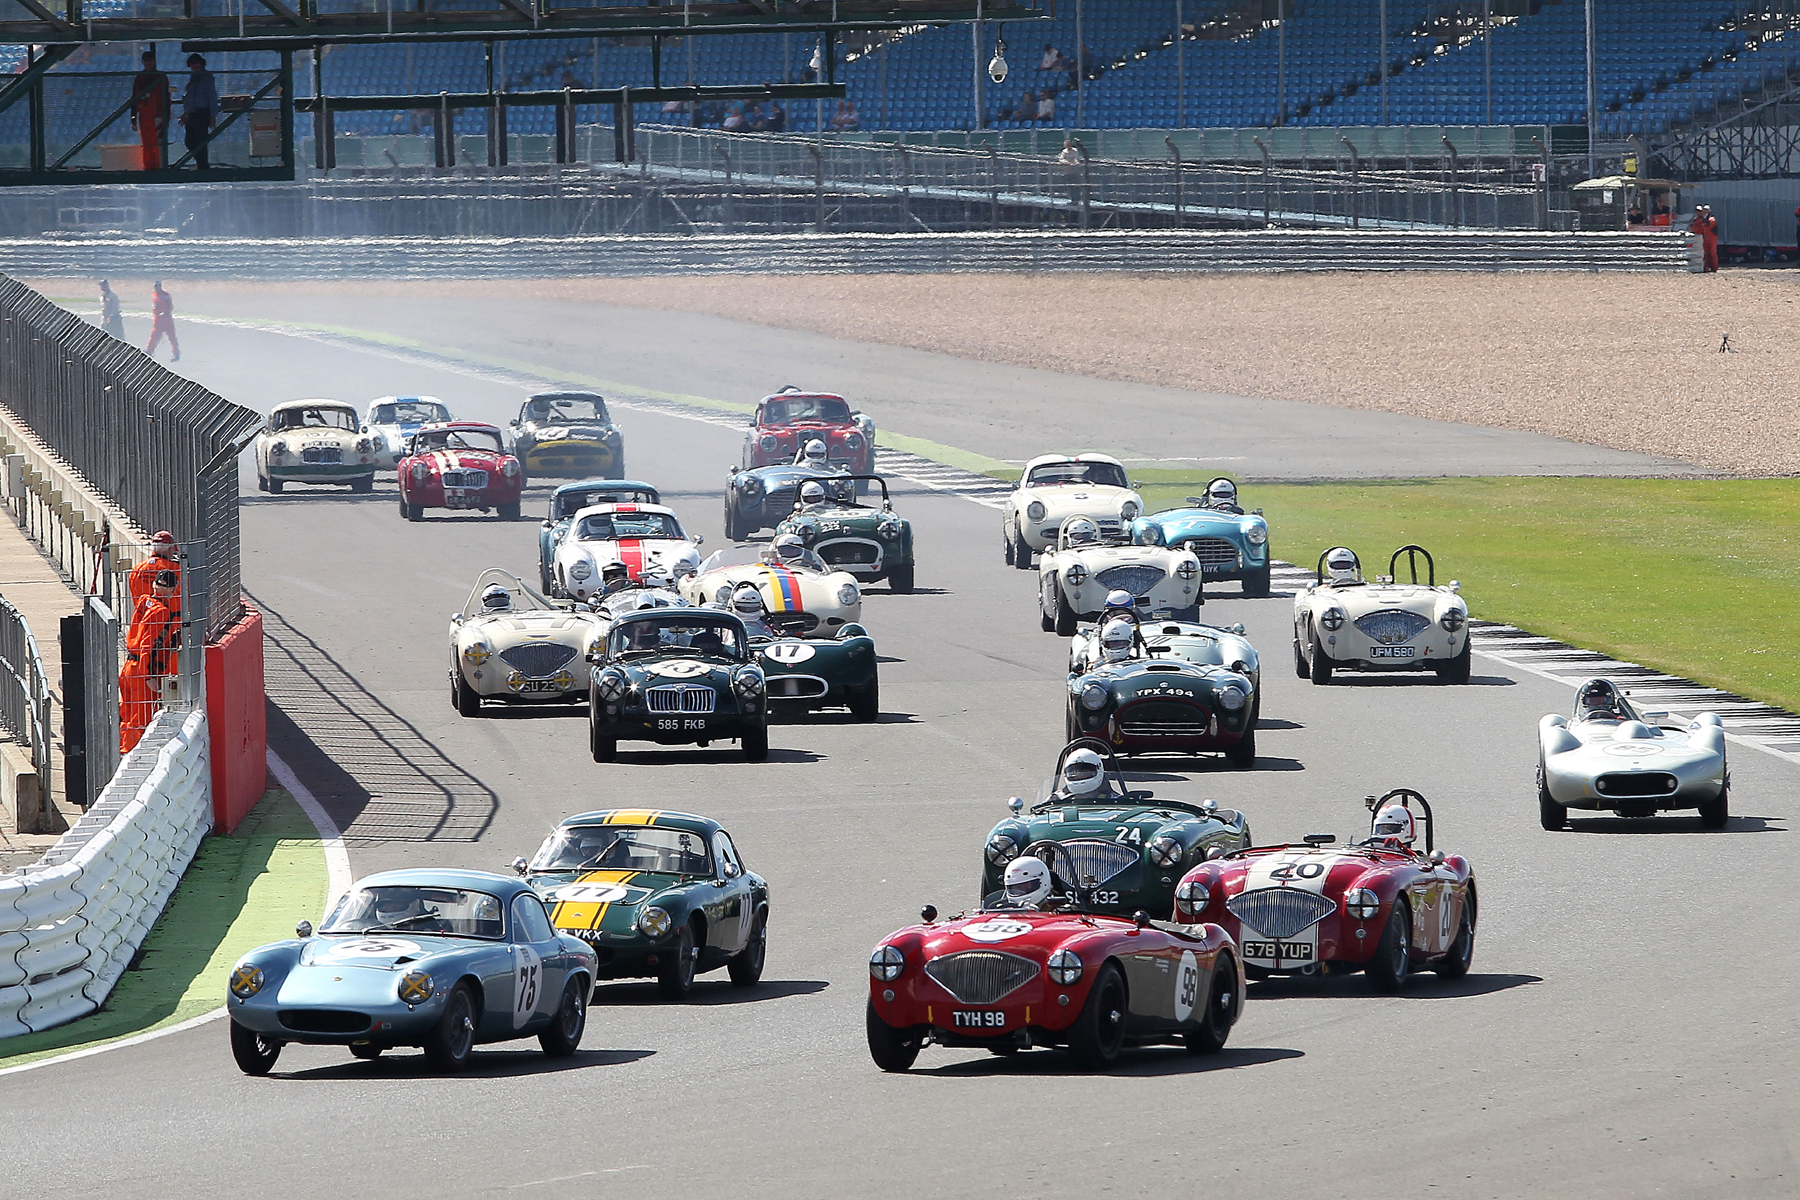 The Lotus Elites of Robin Ellis and Mike Freeman take advantage of the inside line to make places . All the cars but one are in picture here with the exception being Terry Bryant's MGA hugging the pitwall. Photo - Mick Walker